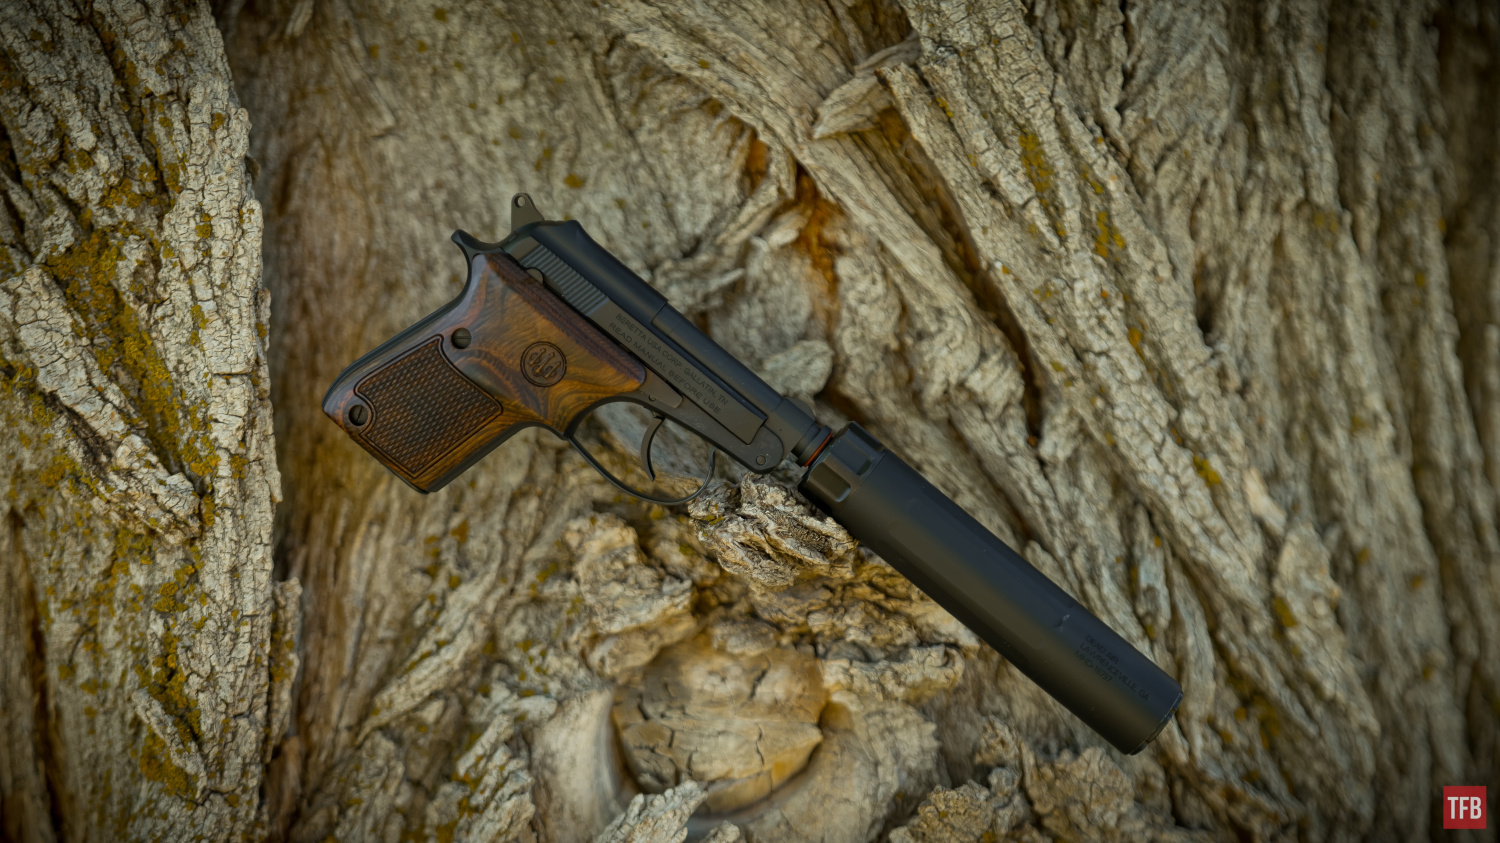 SILENCER SATURDAY #183: Put On Your Dead Air Mask!